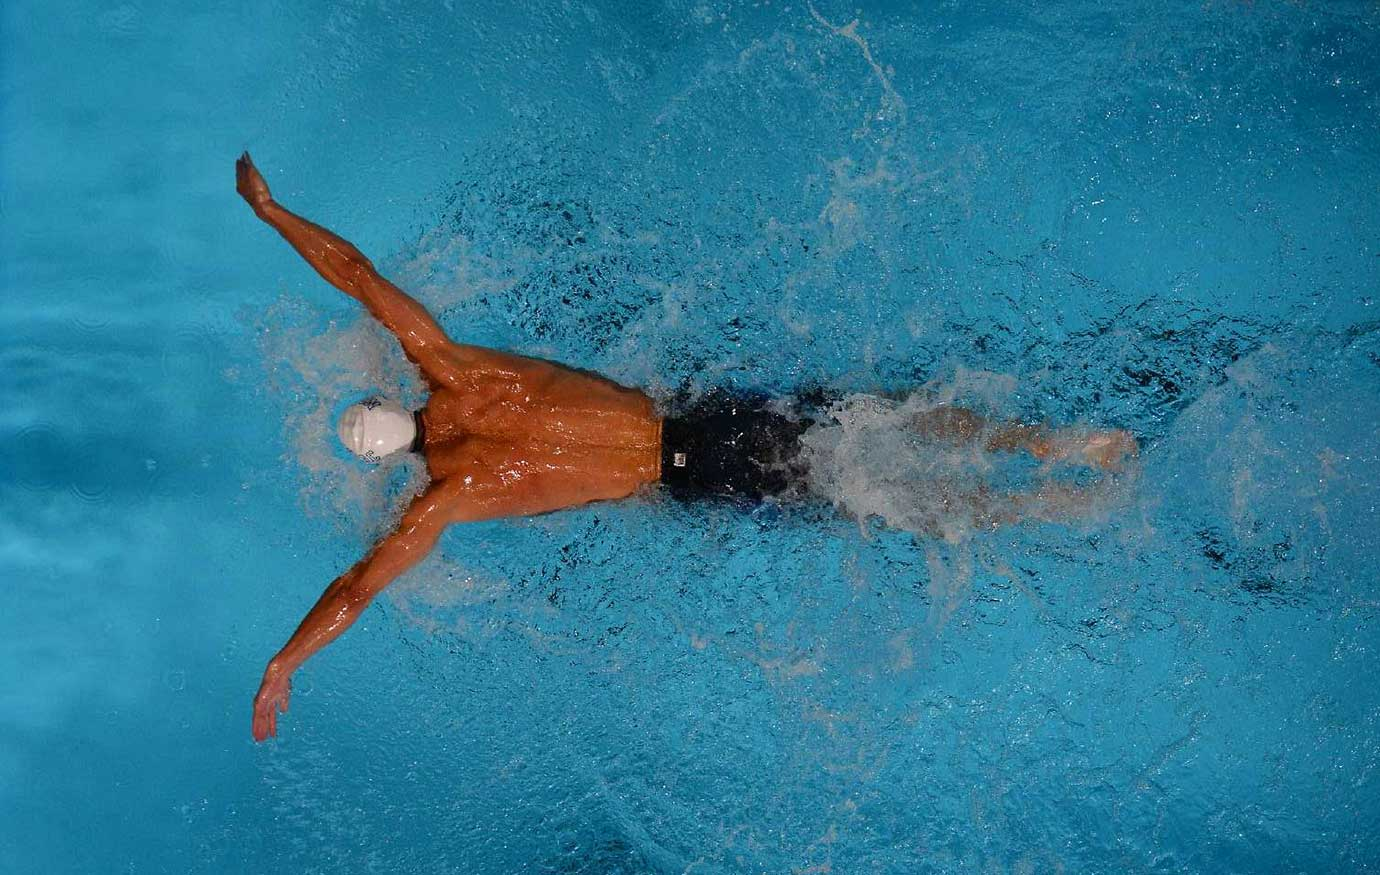 Michael Phelps in the 200-meter butterfly semifinals at the 2012 U.S. Olympic Swimming Trials.